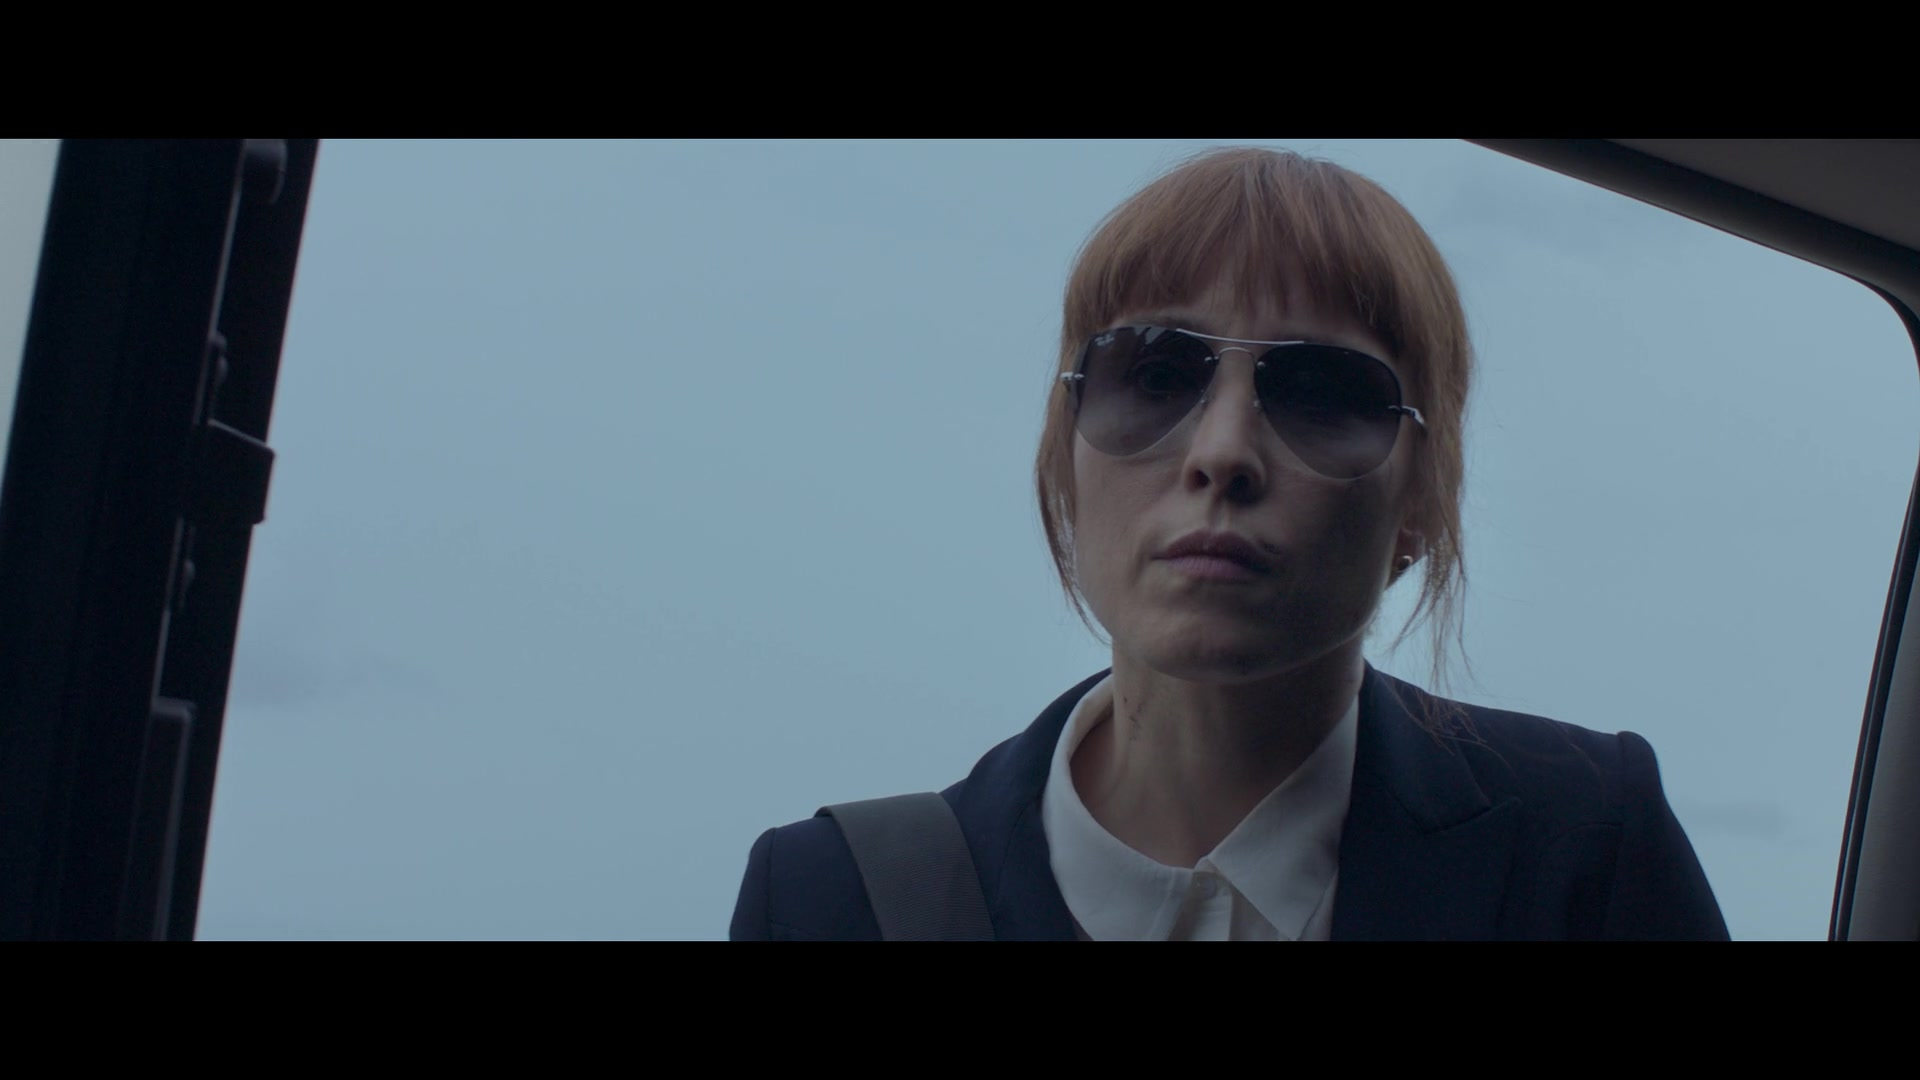 e8cab8d908505 Ray-Ban Women s Sunglasses Worn by Noomi Rapace in Close (2019) Movie  Product